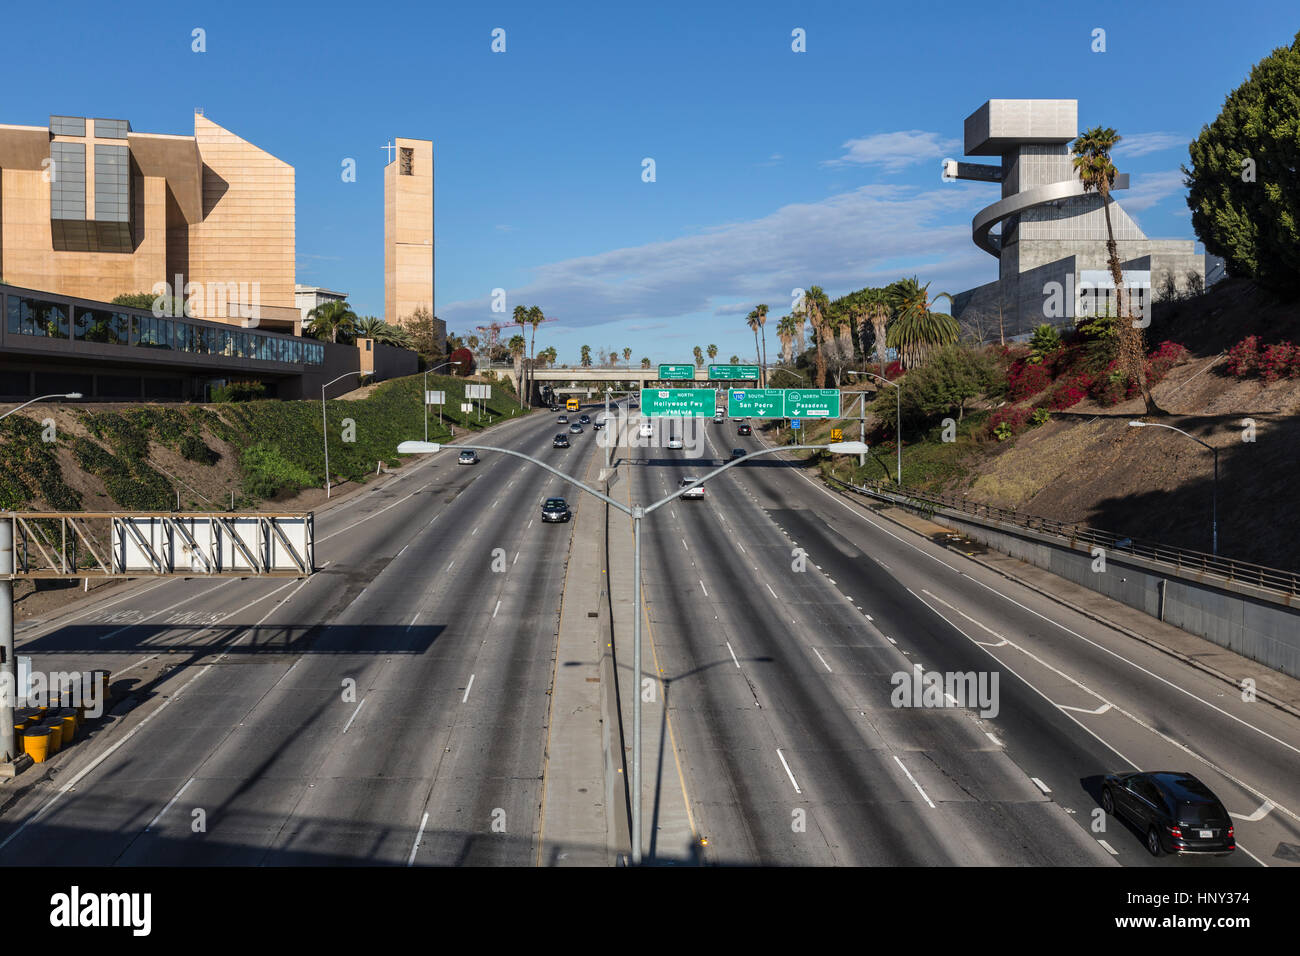 LOS ANGELES, CALIFORNIA - November 24, 2013:  Traffic free weekend view of the Hollywood 101 Freeway, modernest - Stock Image